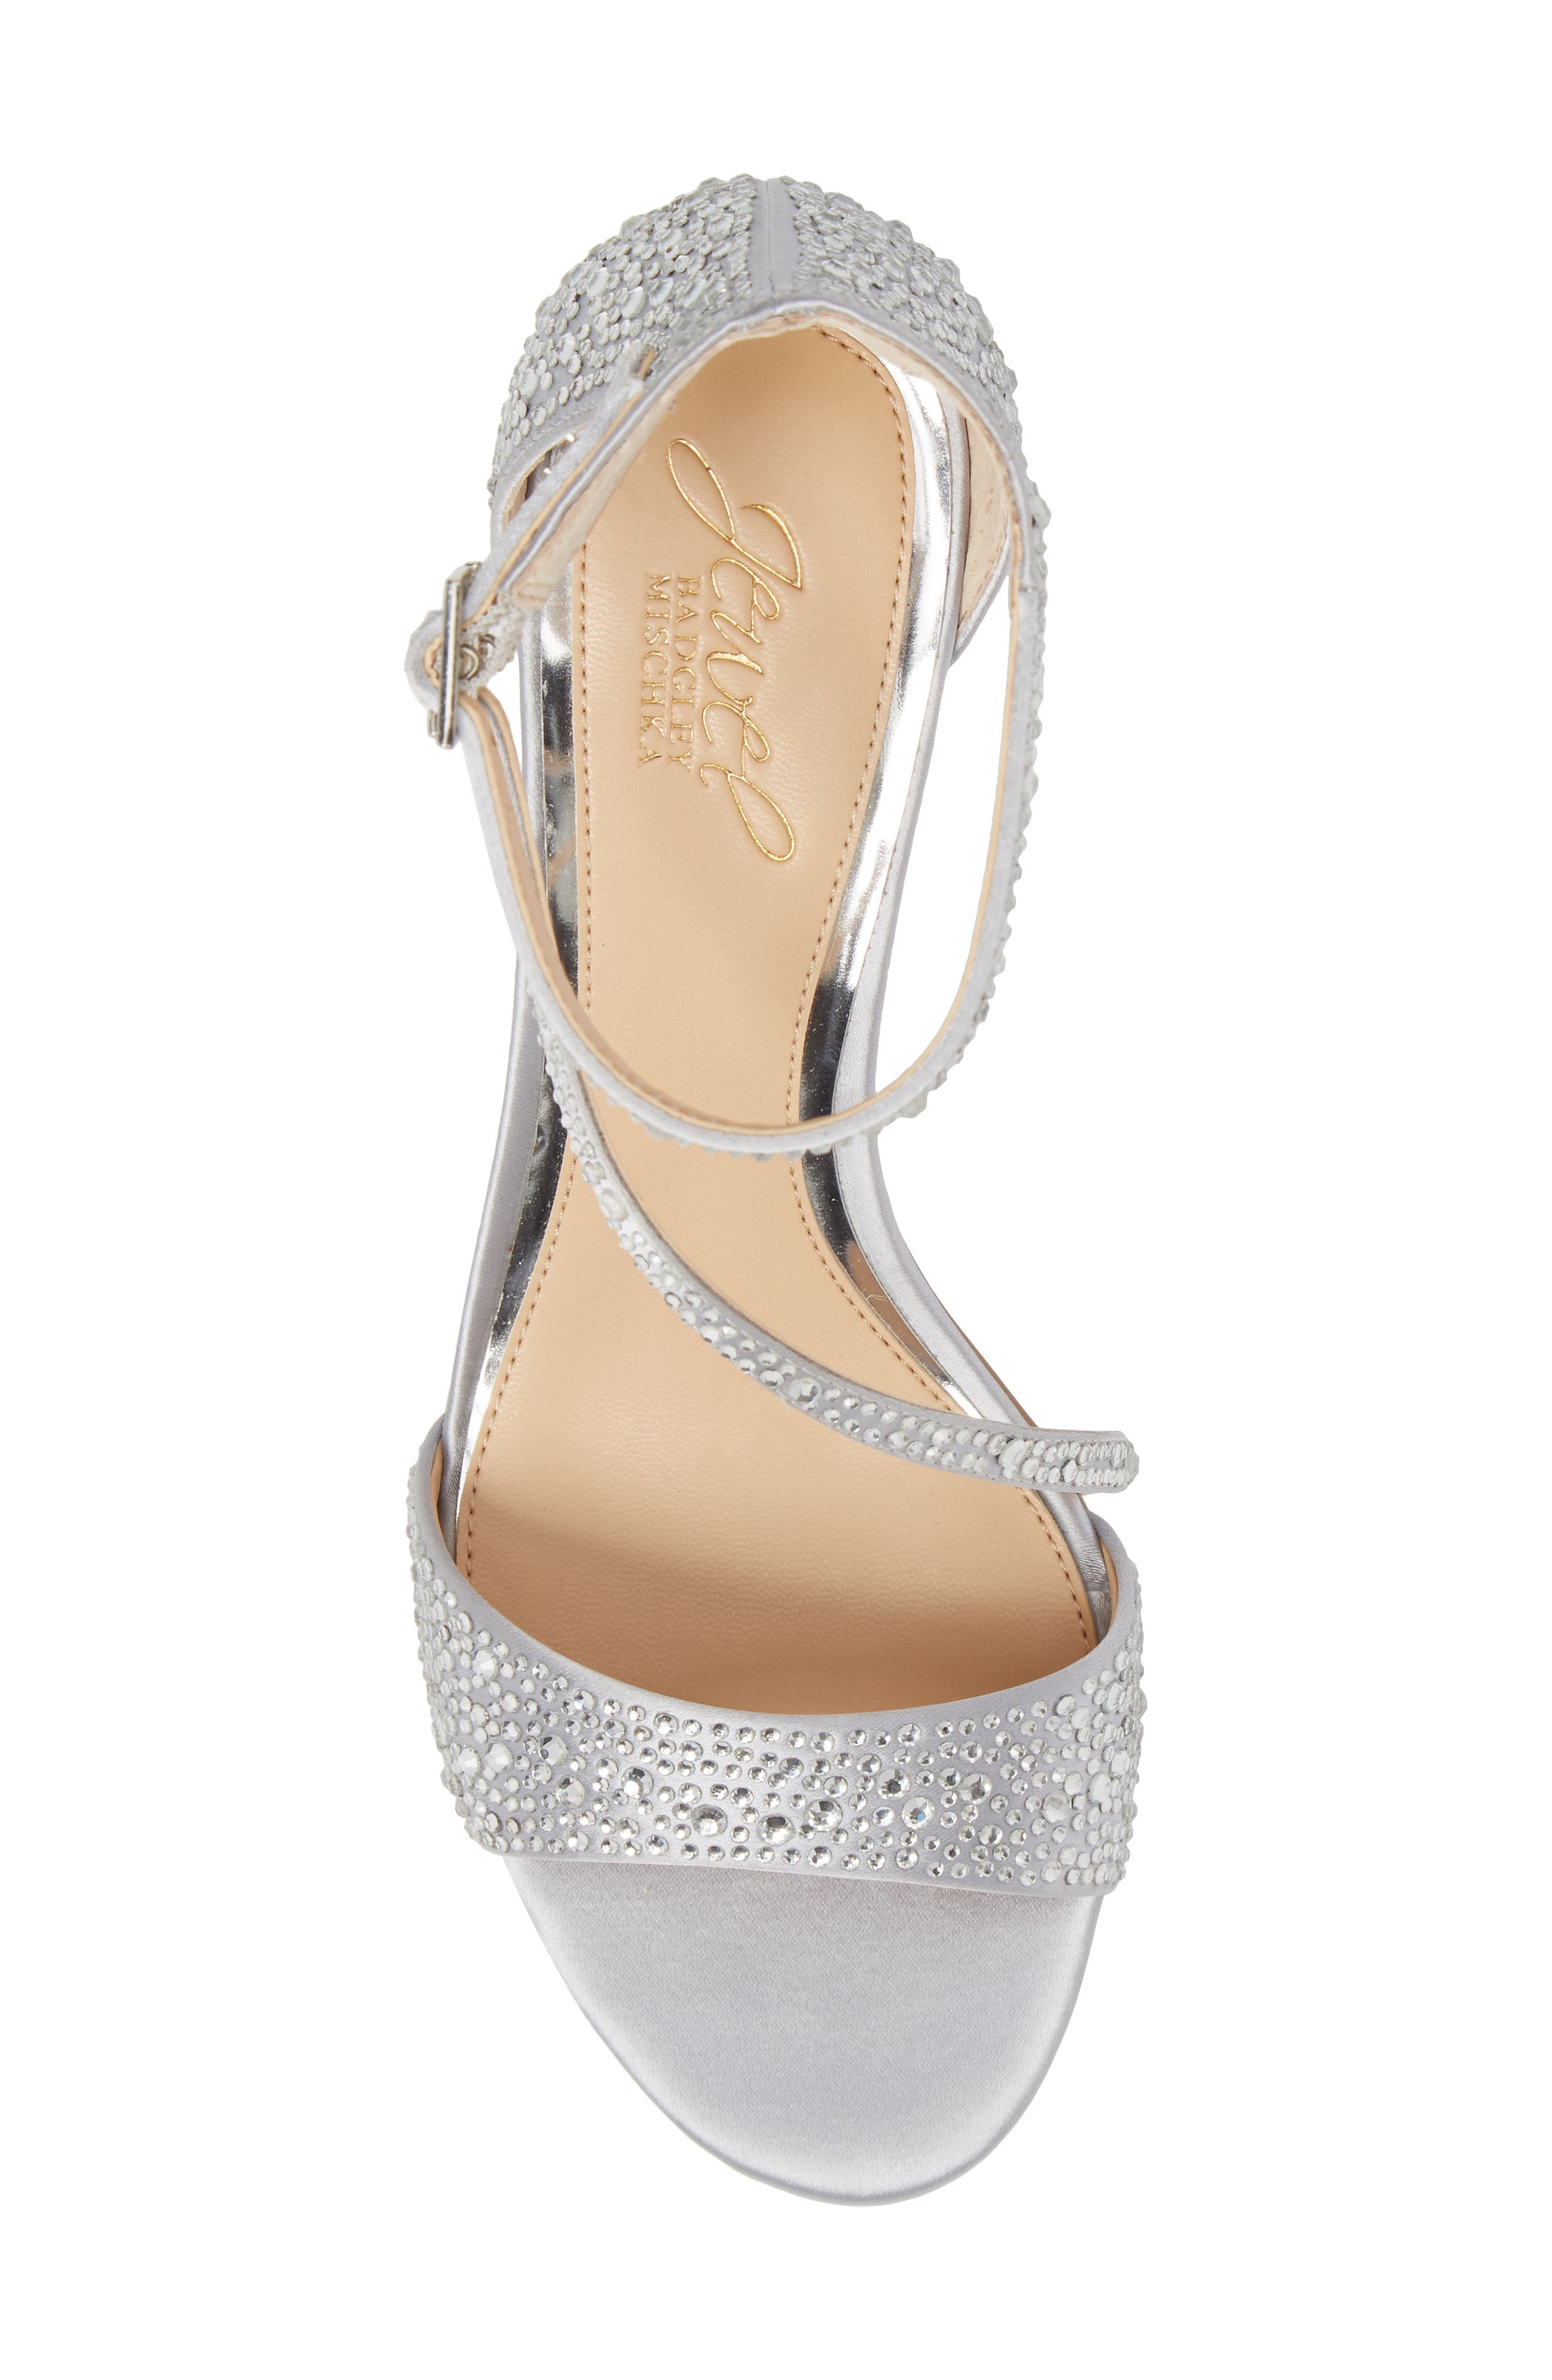 Tangerine Crystal Embellished Sandal,                             Alternate thumbnail 5, color,                             Silver Satin